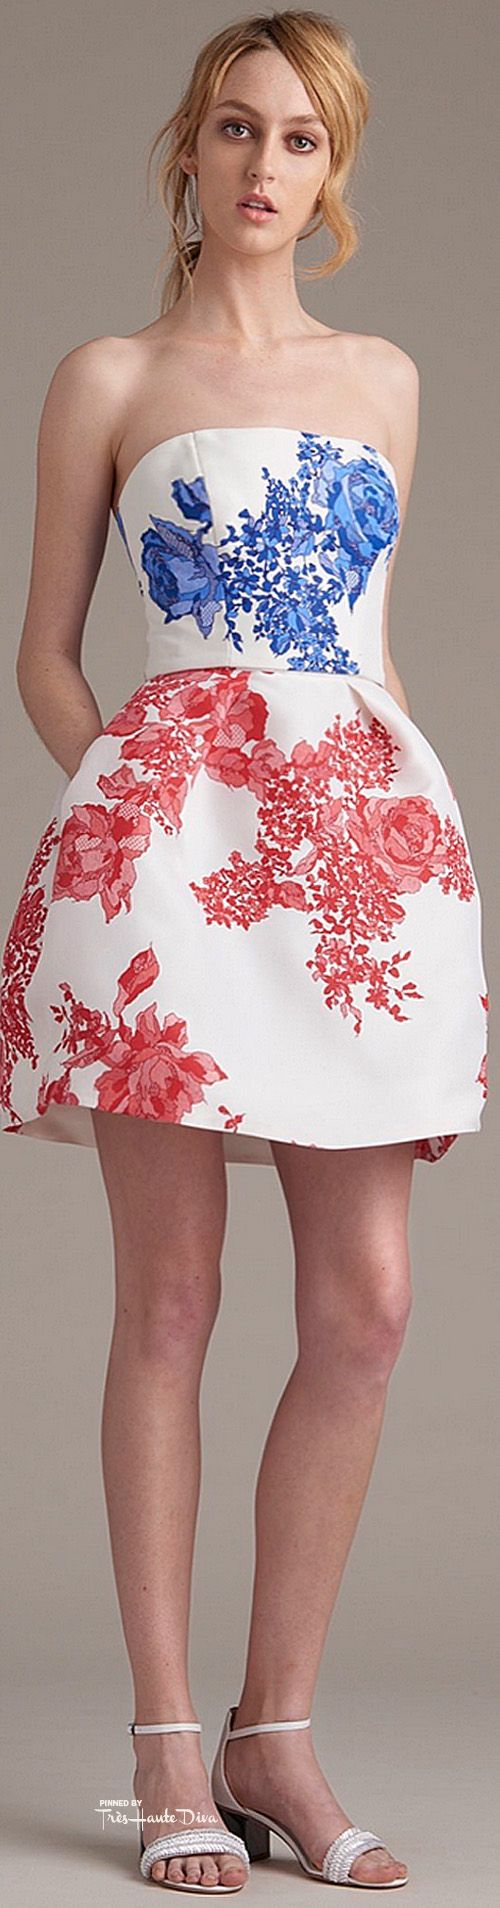 79 best Florals images on Pinterest   Fashion show, High fashion and ...